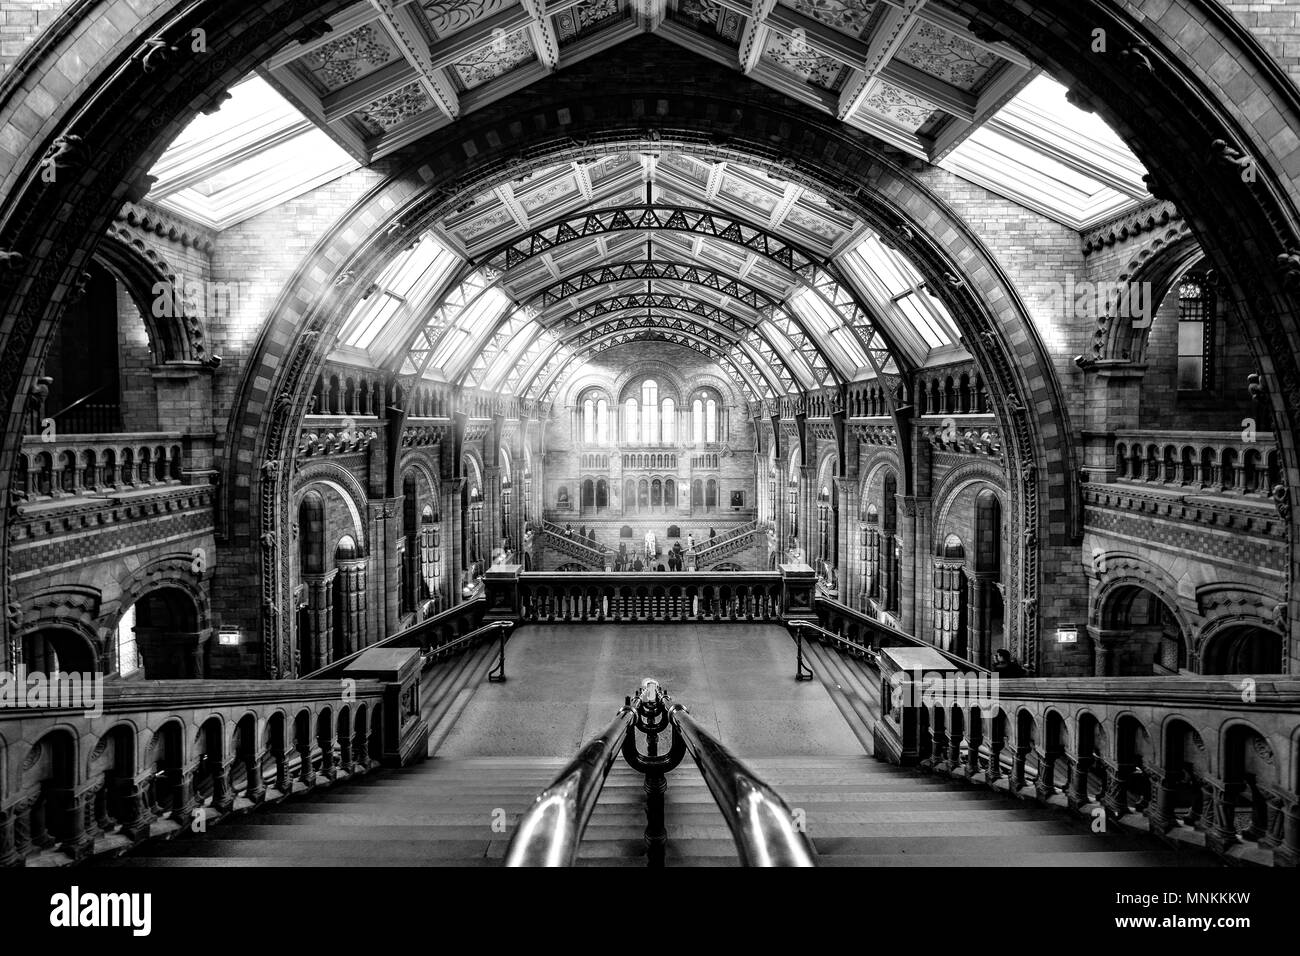 B&W version of the central hall of the Natural Histoy Museum in London employing some new lighting processing techniques as explained here: https://ww - Stock Image